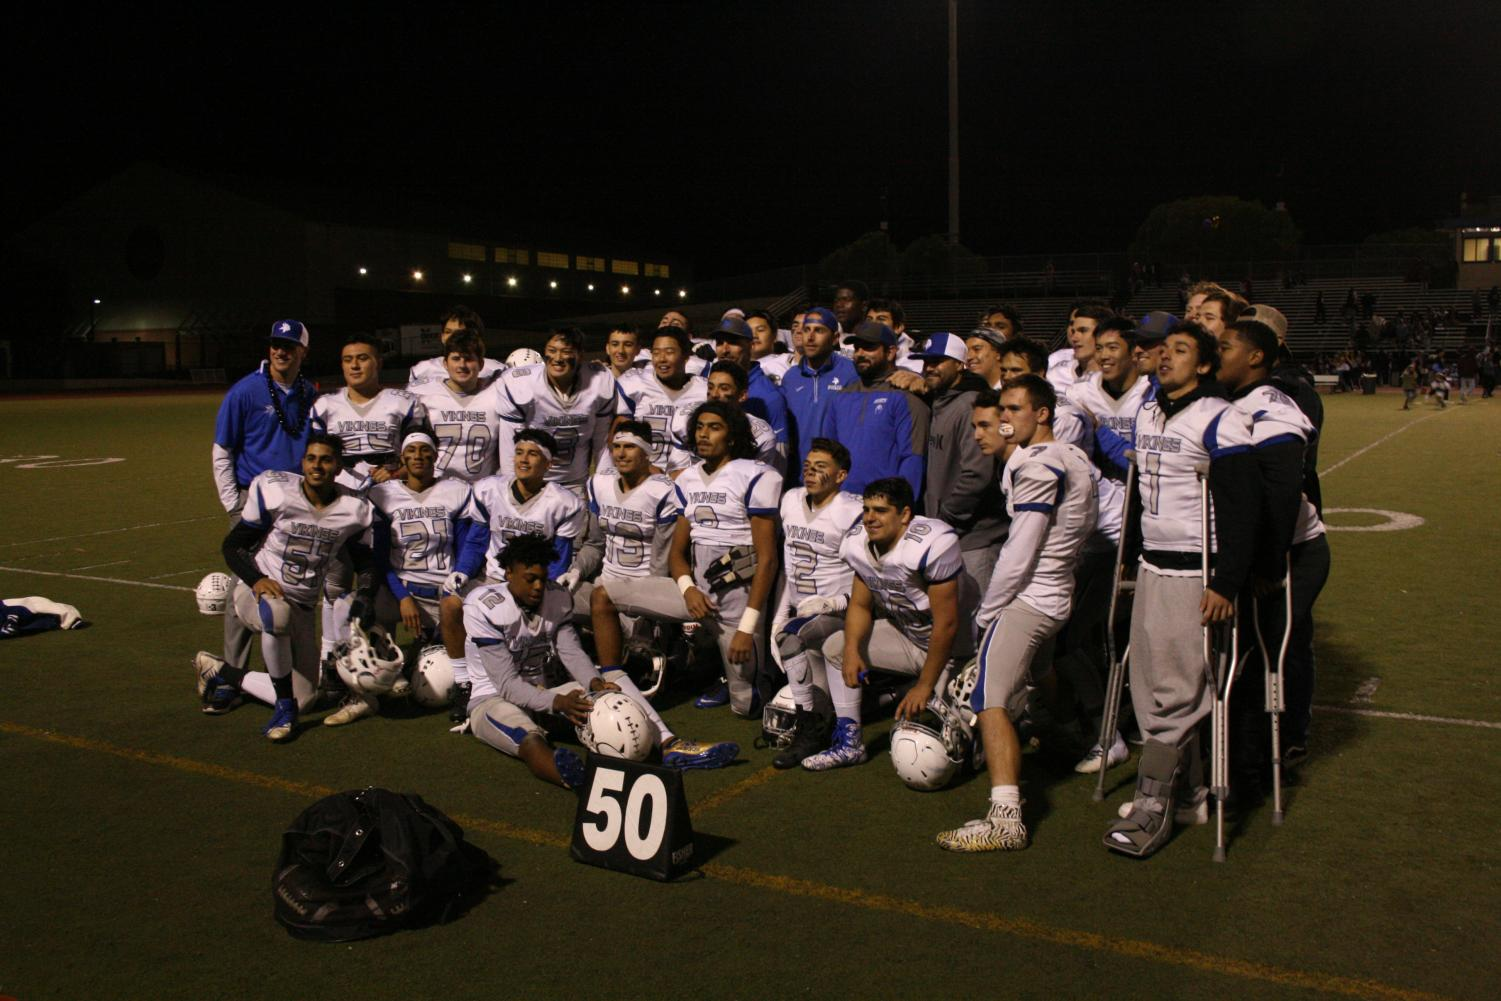 After a stunning victory at the last game of the regular season at TAK, Varsity will continue in the NCS Division 1 playoffs.